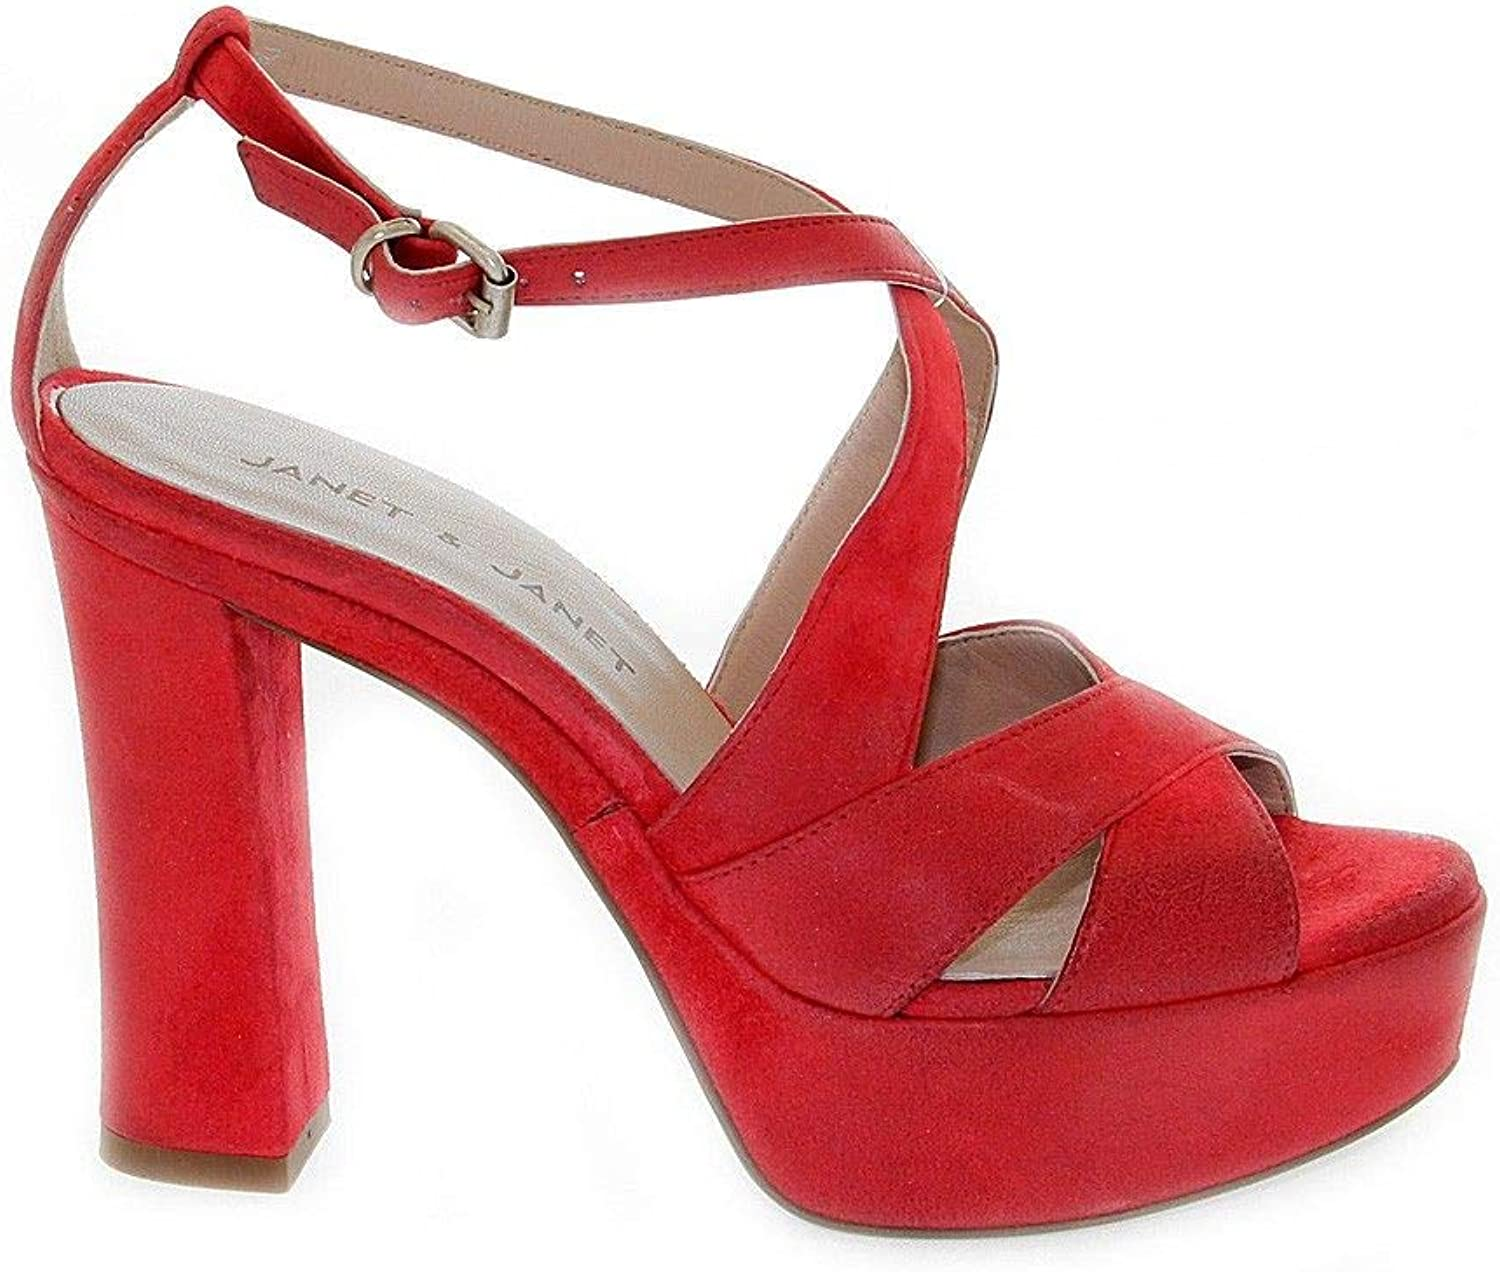 JANET&JANET Women's 33500 Red Leather Sandals